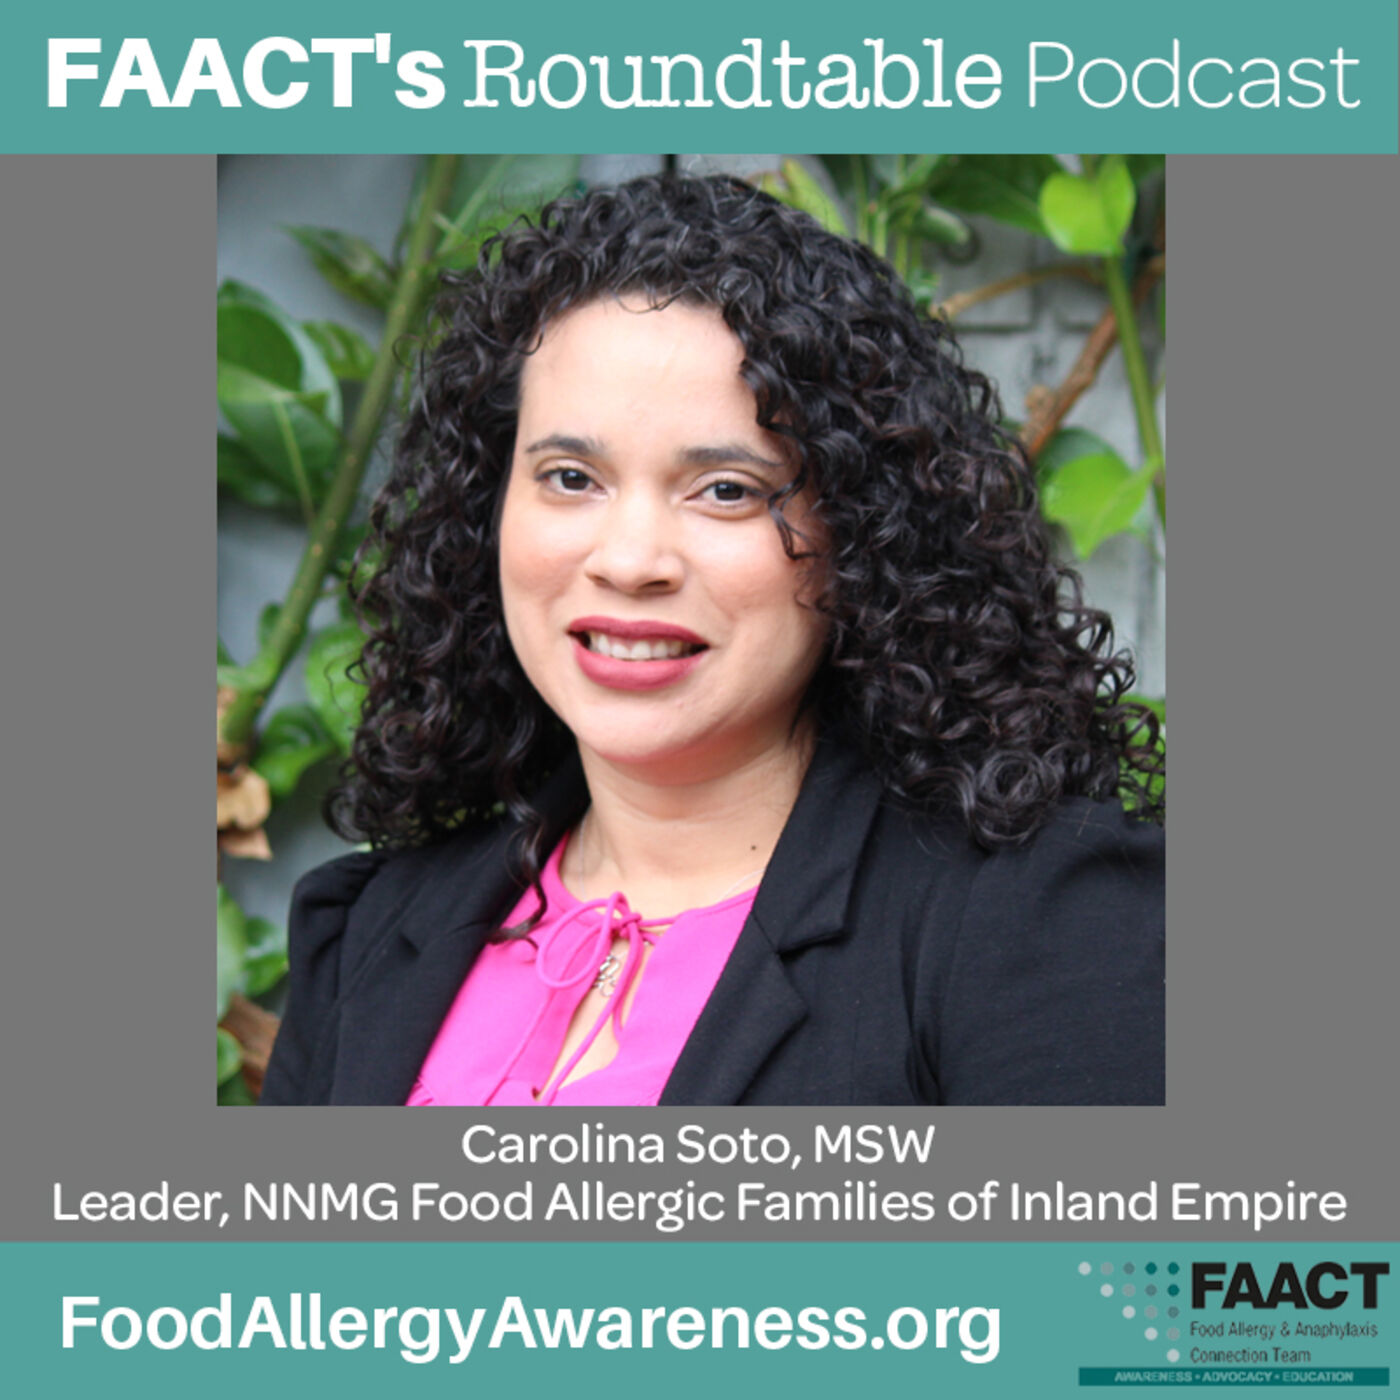 Ep. 46: Staying Safe During the Holidays with Food Allergies and Cultural Traditions